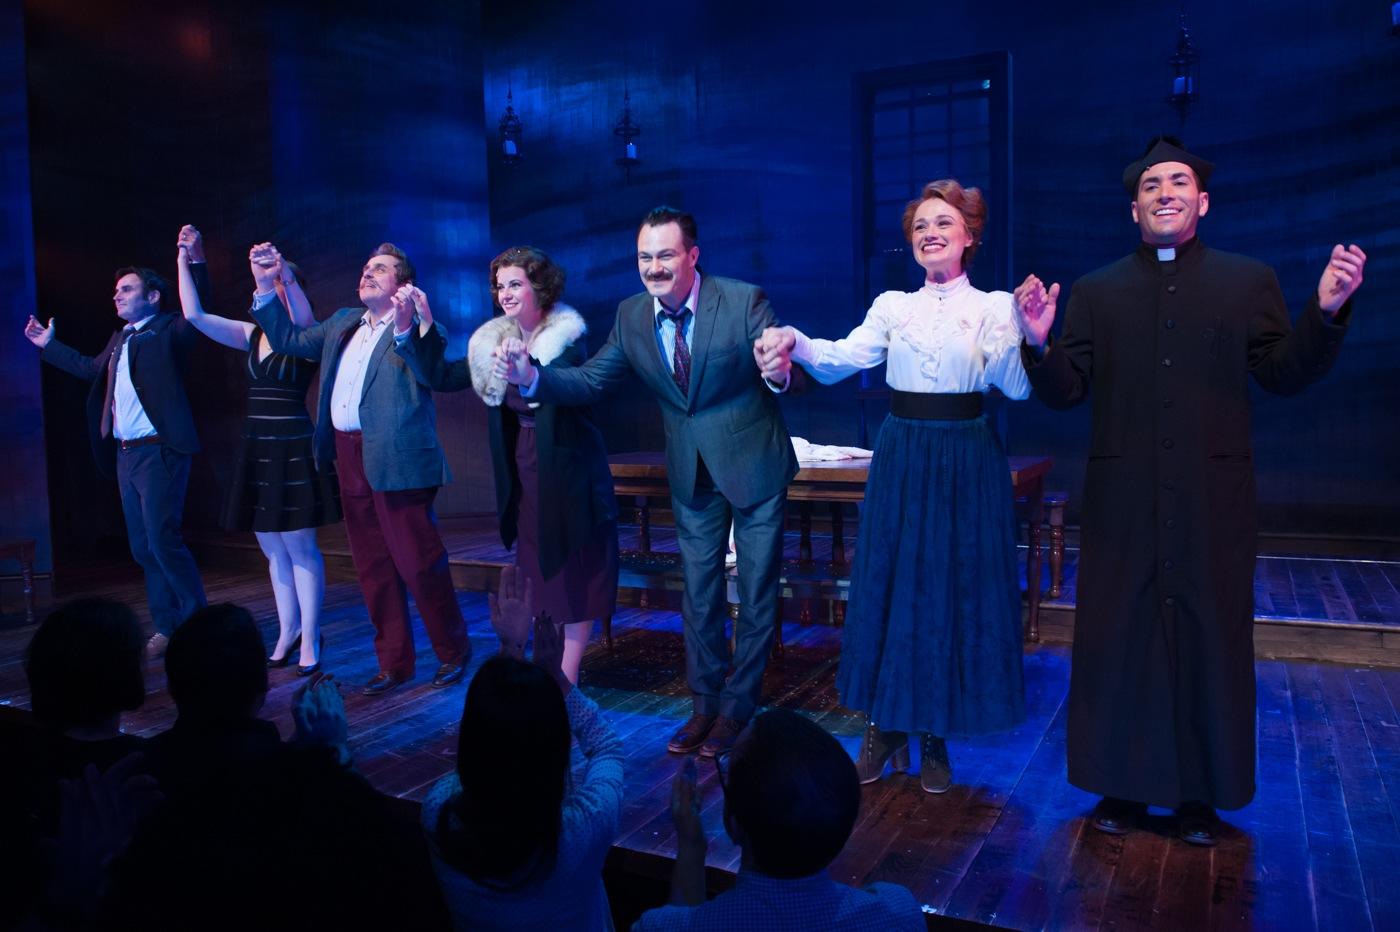 (l. to r.) Gary Troy, Victoria Huston-Elem, Michael McCormick, Whitney Bashor, Matt Bogart, Lianne Marie Dobbs, Zachary Prince  at the curtain call of HIMSELF AND NORA at the Minetta Lane Theatre, June 6, 2016. Photo by Jason Woodruff.